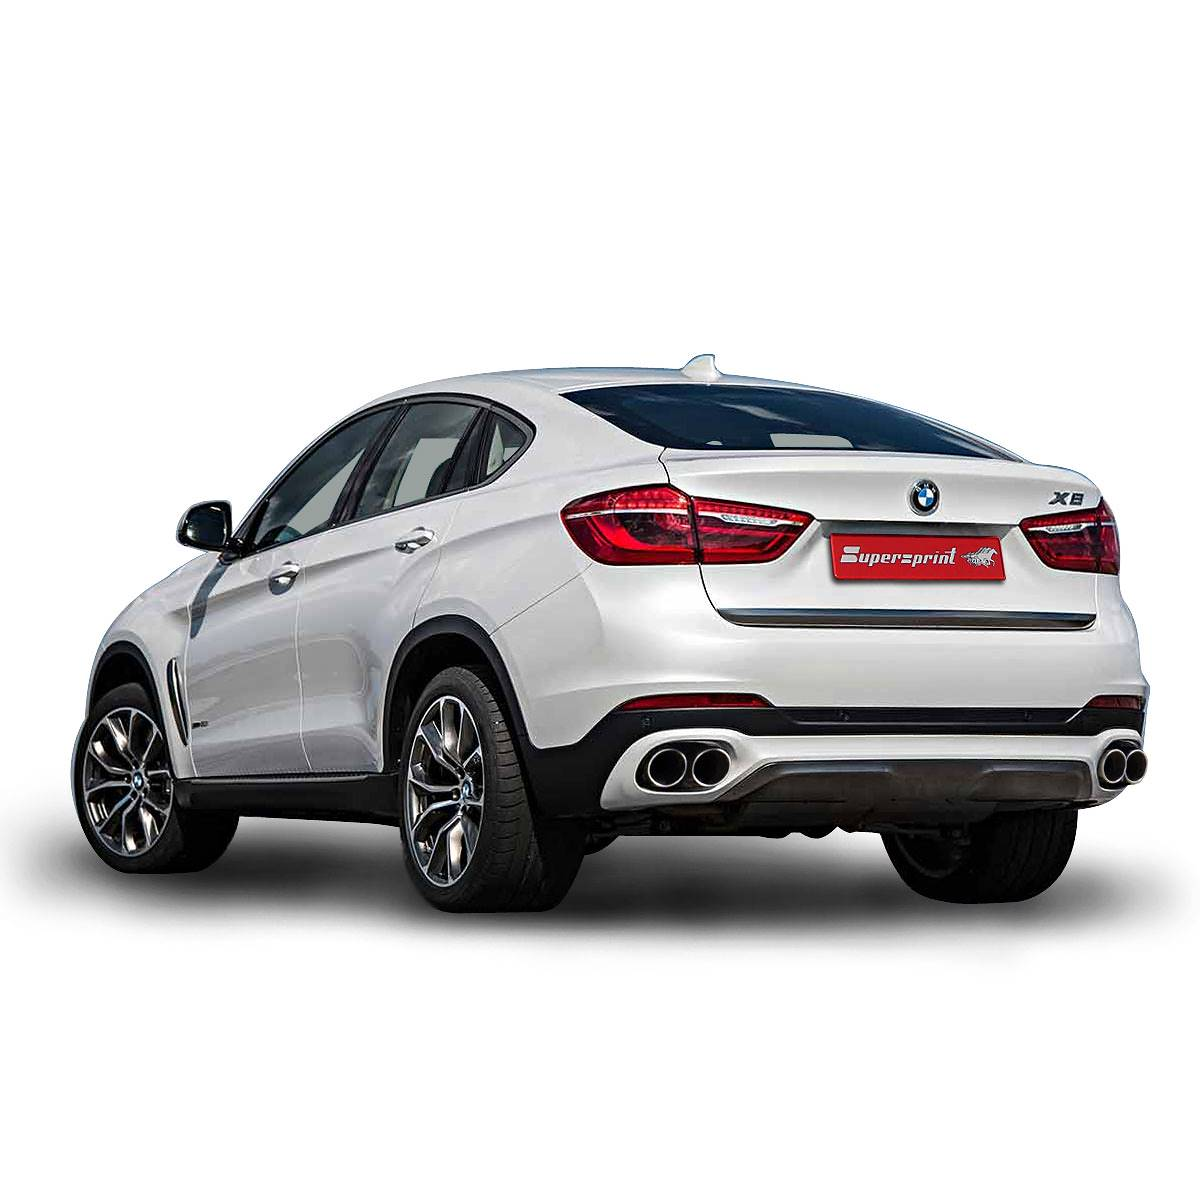 Performance Sport Exhaust For X6 50i Xdrive From 2014 Bmw